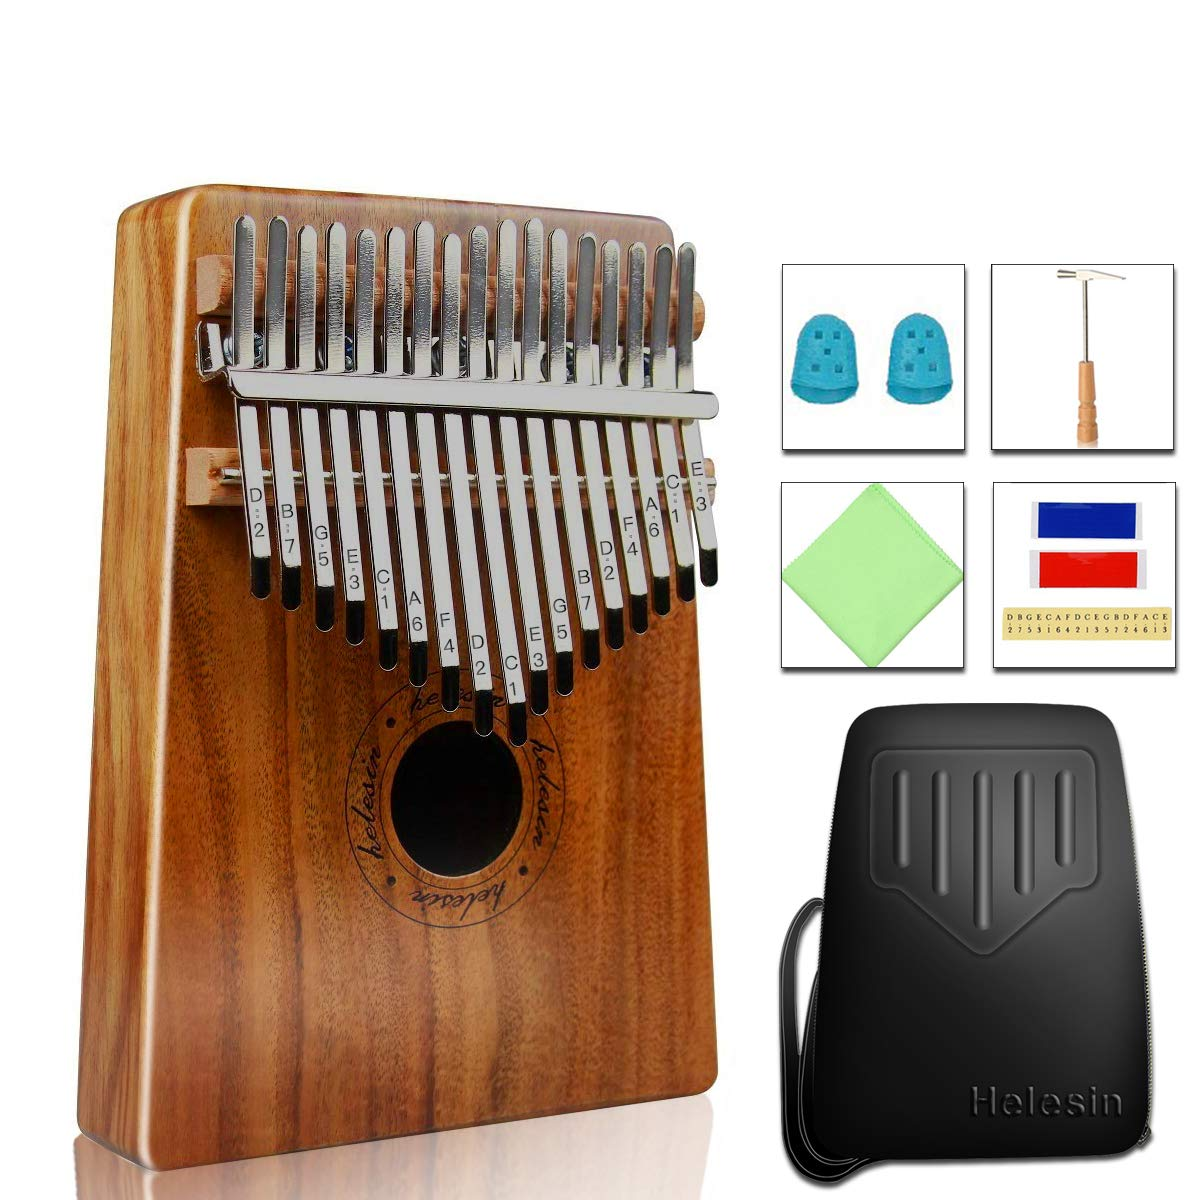 17 Keys Kalimba Thumb Piano, Protable Finger Piano mit Eva Waterproof Hard Protective Case, Gift für Kids Adult Beginners